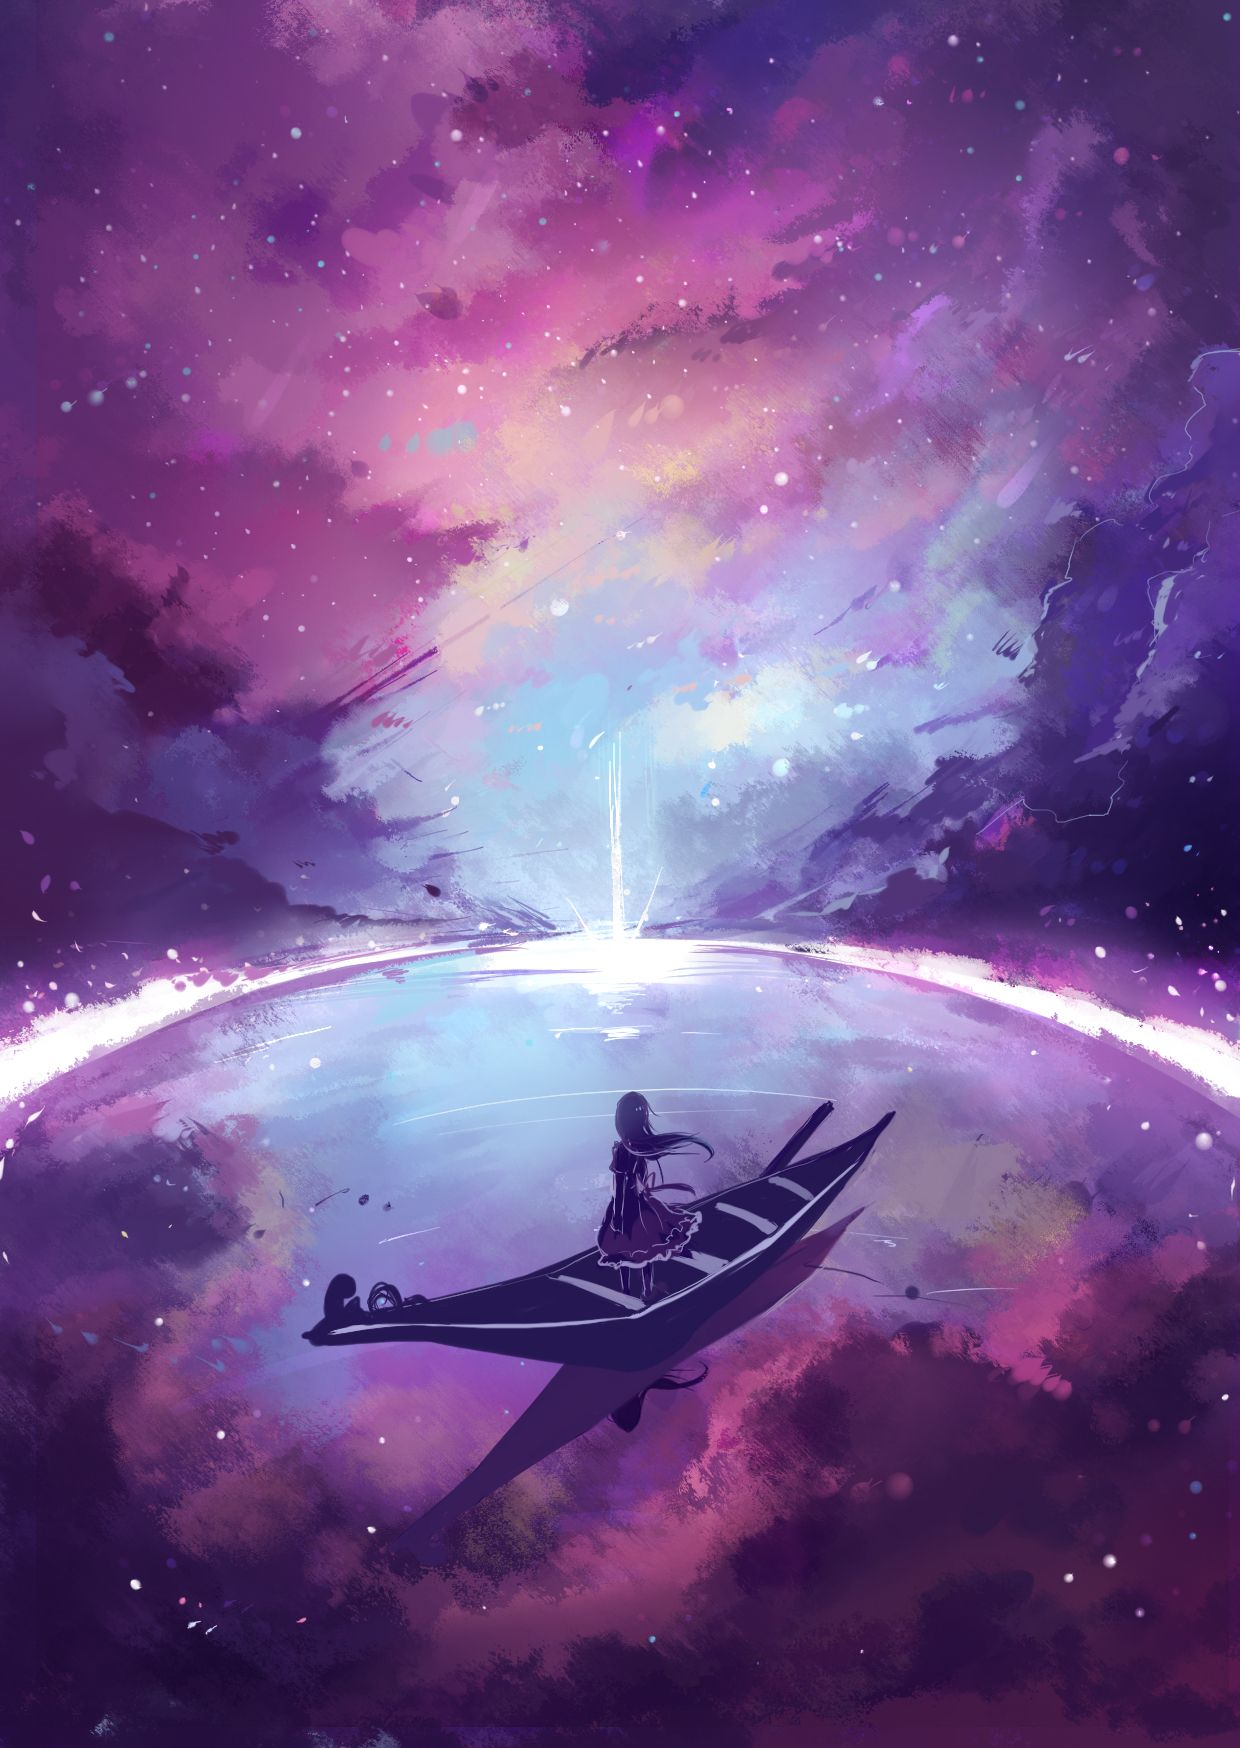 Anime...scenery...girl...boat...GalaxySpace...cool